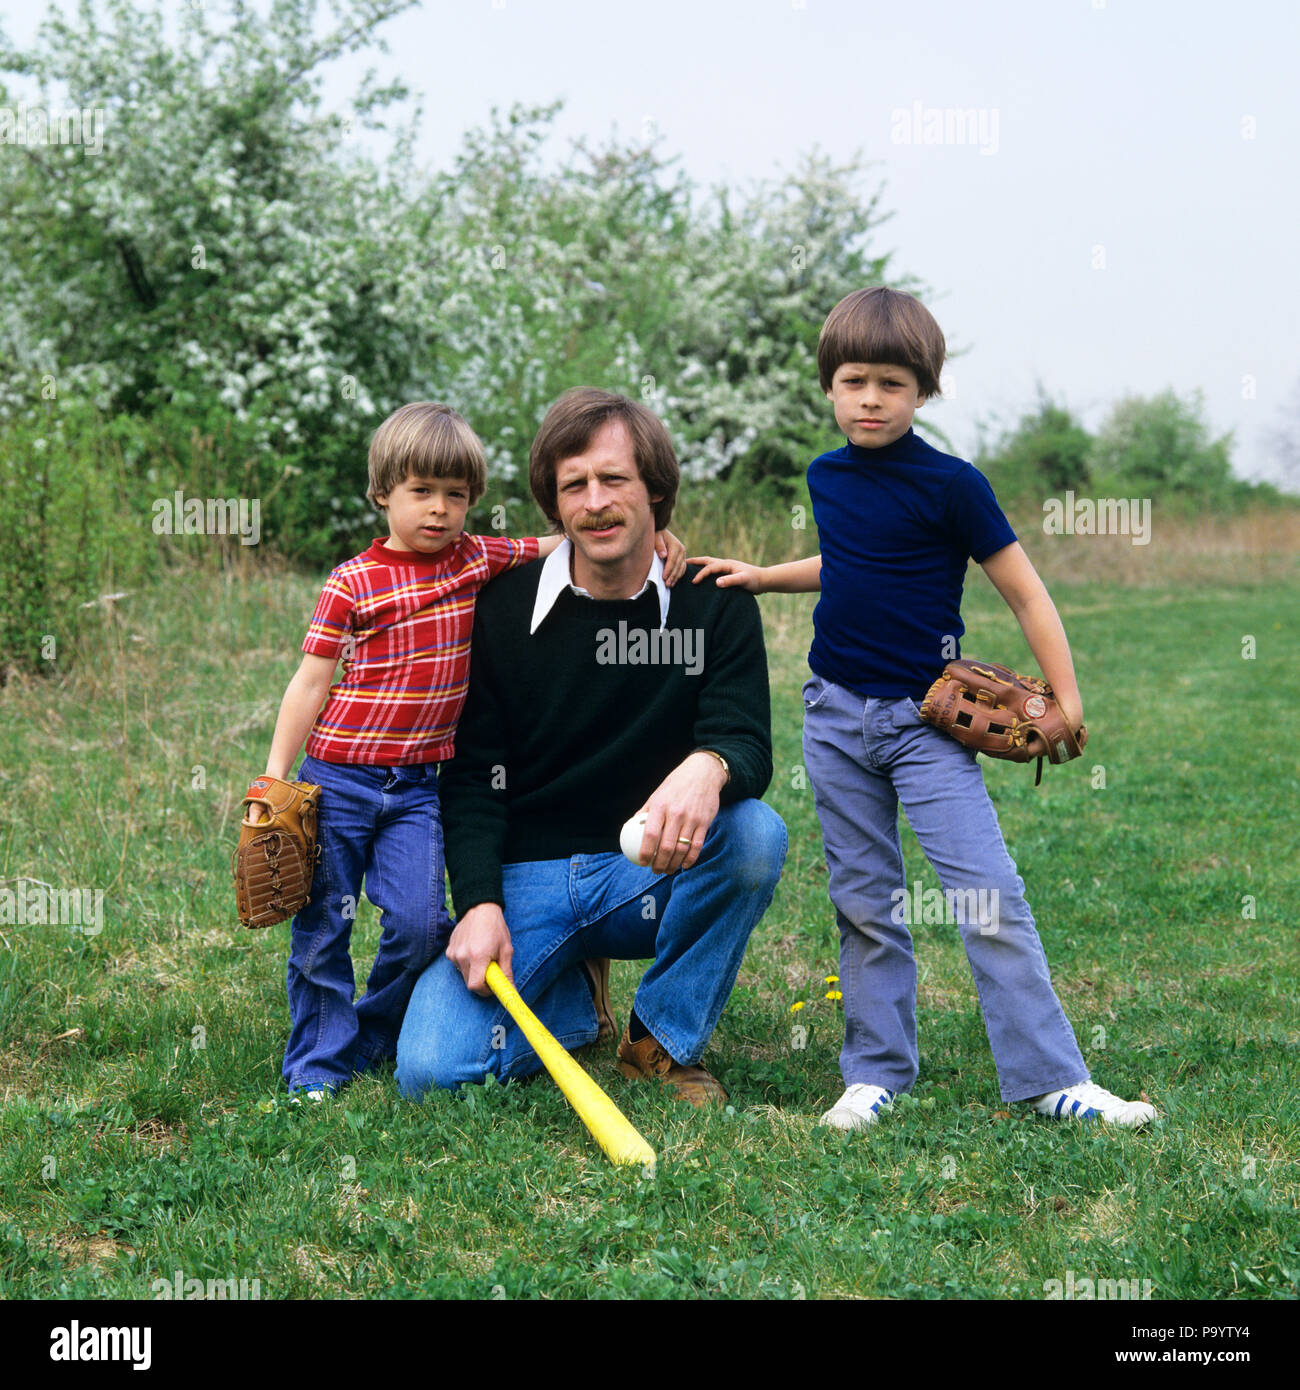 1970s FATHER AND TWO SONS WITH BASEBALL GLOVES AND BAT LOOKING AT CAMERA - kj7861 HAR001 HARS 1 JUVENILE TEAMWORK COMPETITION ATHLETE SONS FAMILIES LIFESTYLE BROTHERS HOME LIFE COPY SPACE FULL-LENGTH PERSONS INSPIRATION CARING MALES ATHLETIC SIBLINGS SPIRITUALITY CONFIDENCE FATHERS EYE CONTACT HAPPINESS STRENGTH AND DADS DIRECTION OPPORTUNITY AUTHORITY SIBLING CONNECTION SUPPORT JUVENILES MID-ADULT MID-ADULT MAN RELAXATION TOGETHERNESS CAUCASIAN ETHNICITY HAR001 OLD FASHIONED - Stock Image